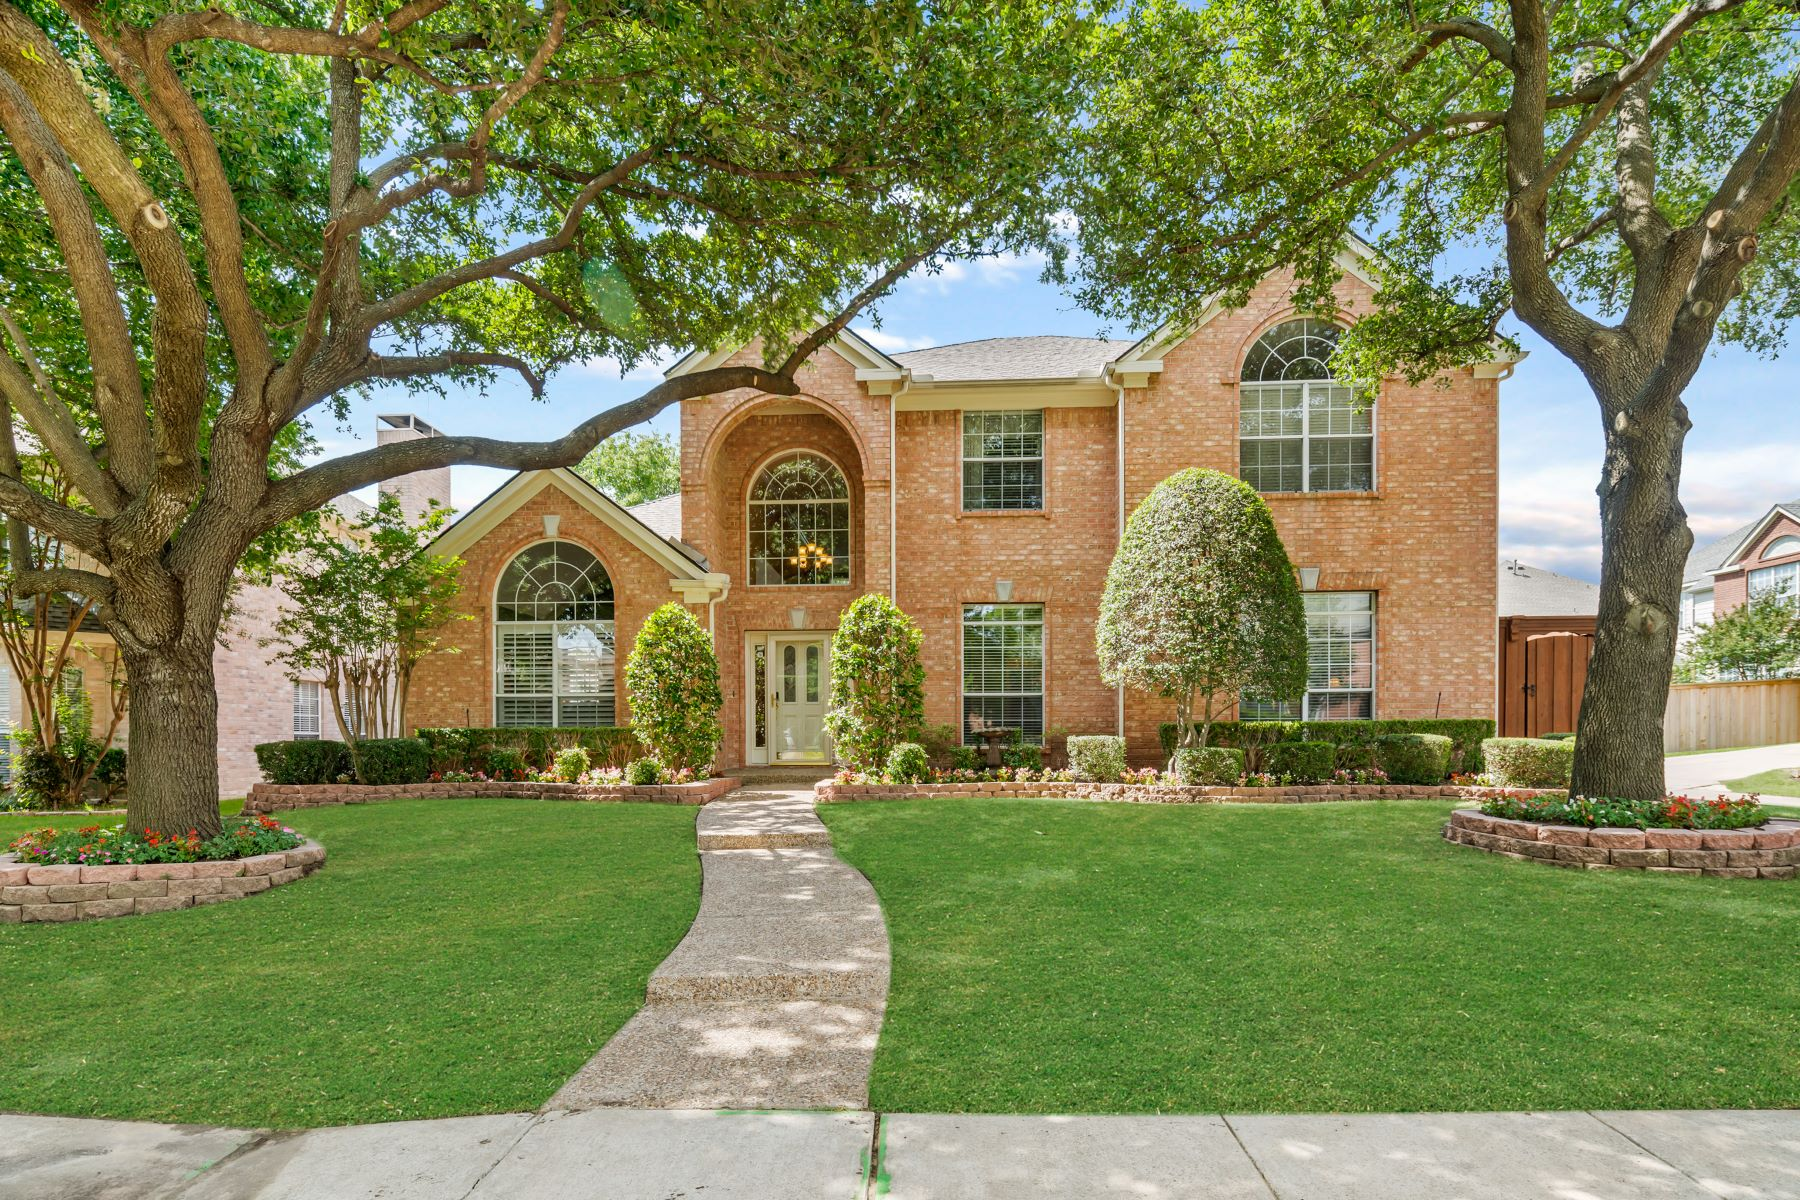 Single Family Homes for Sale at 4212 Atherton Drive Plano, Texas 75093 United States